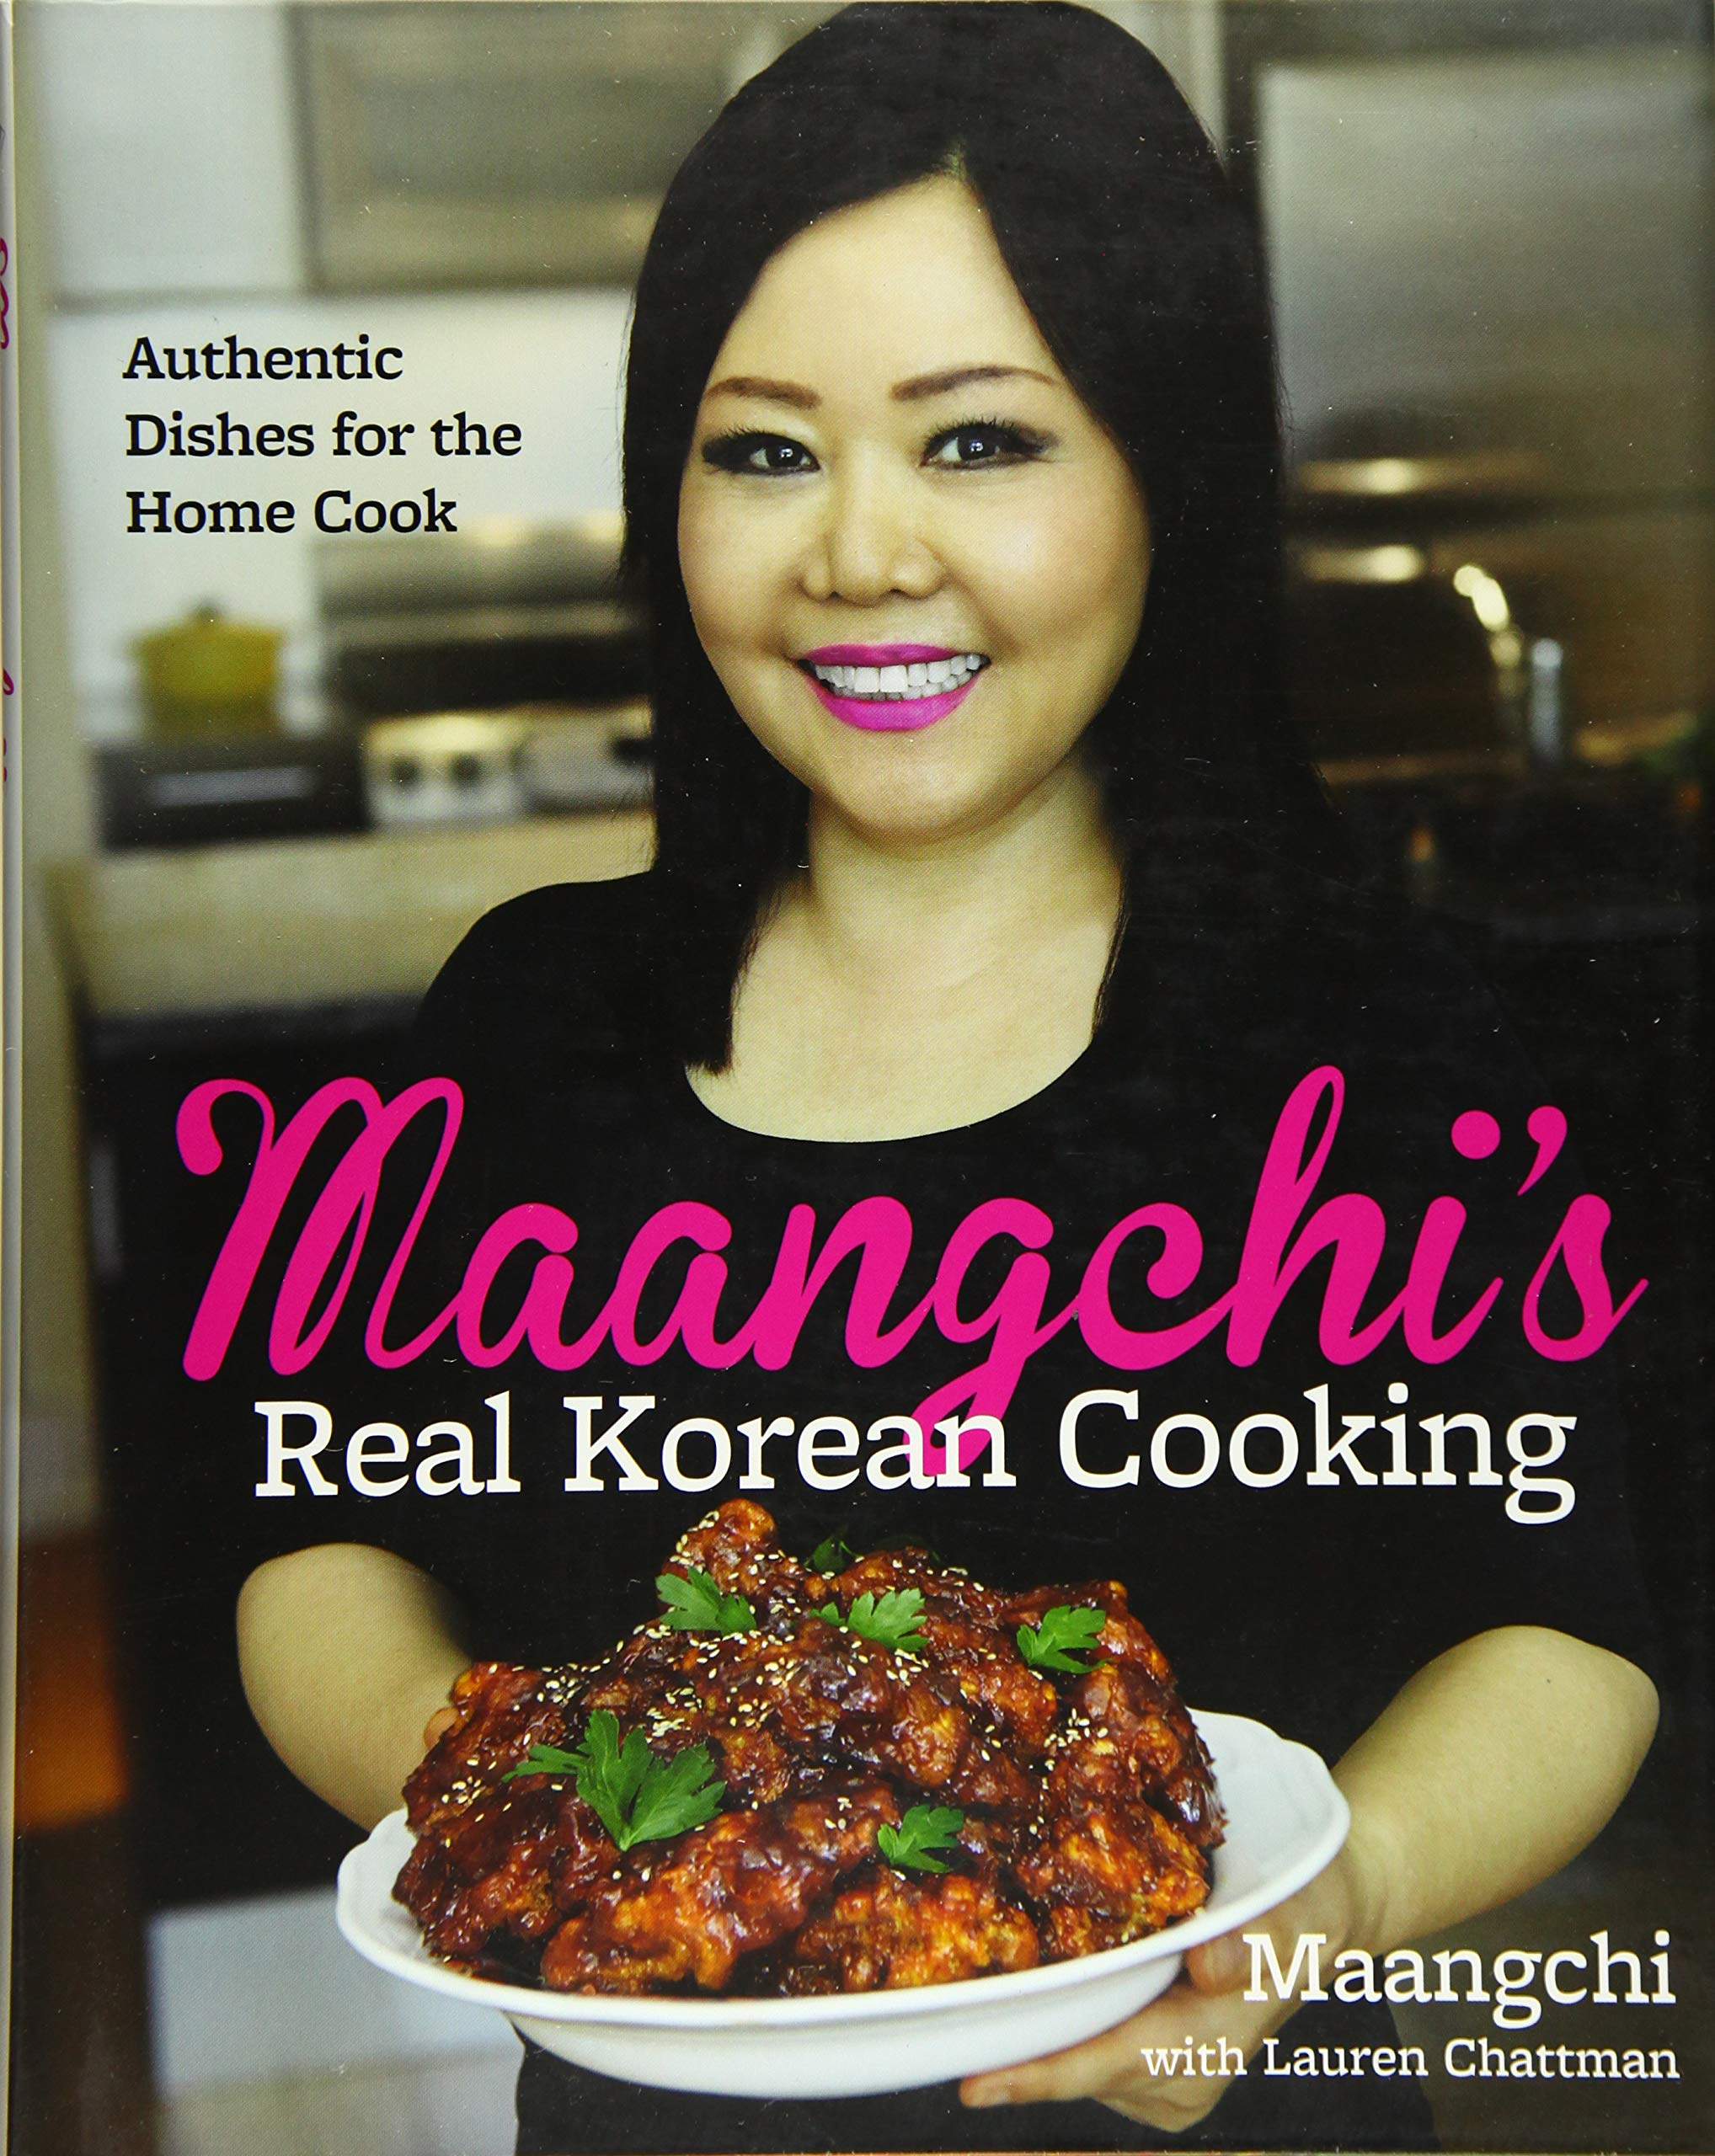 Book cover for Maangchi's Real Korean Cooking, which shows her in a black shirt with bright pink lipstick, holding a white bowl of Korean fried chicken garnished with sesame seeds and parsley.